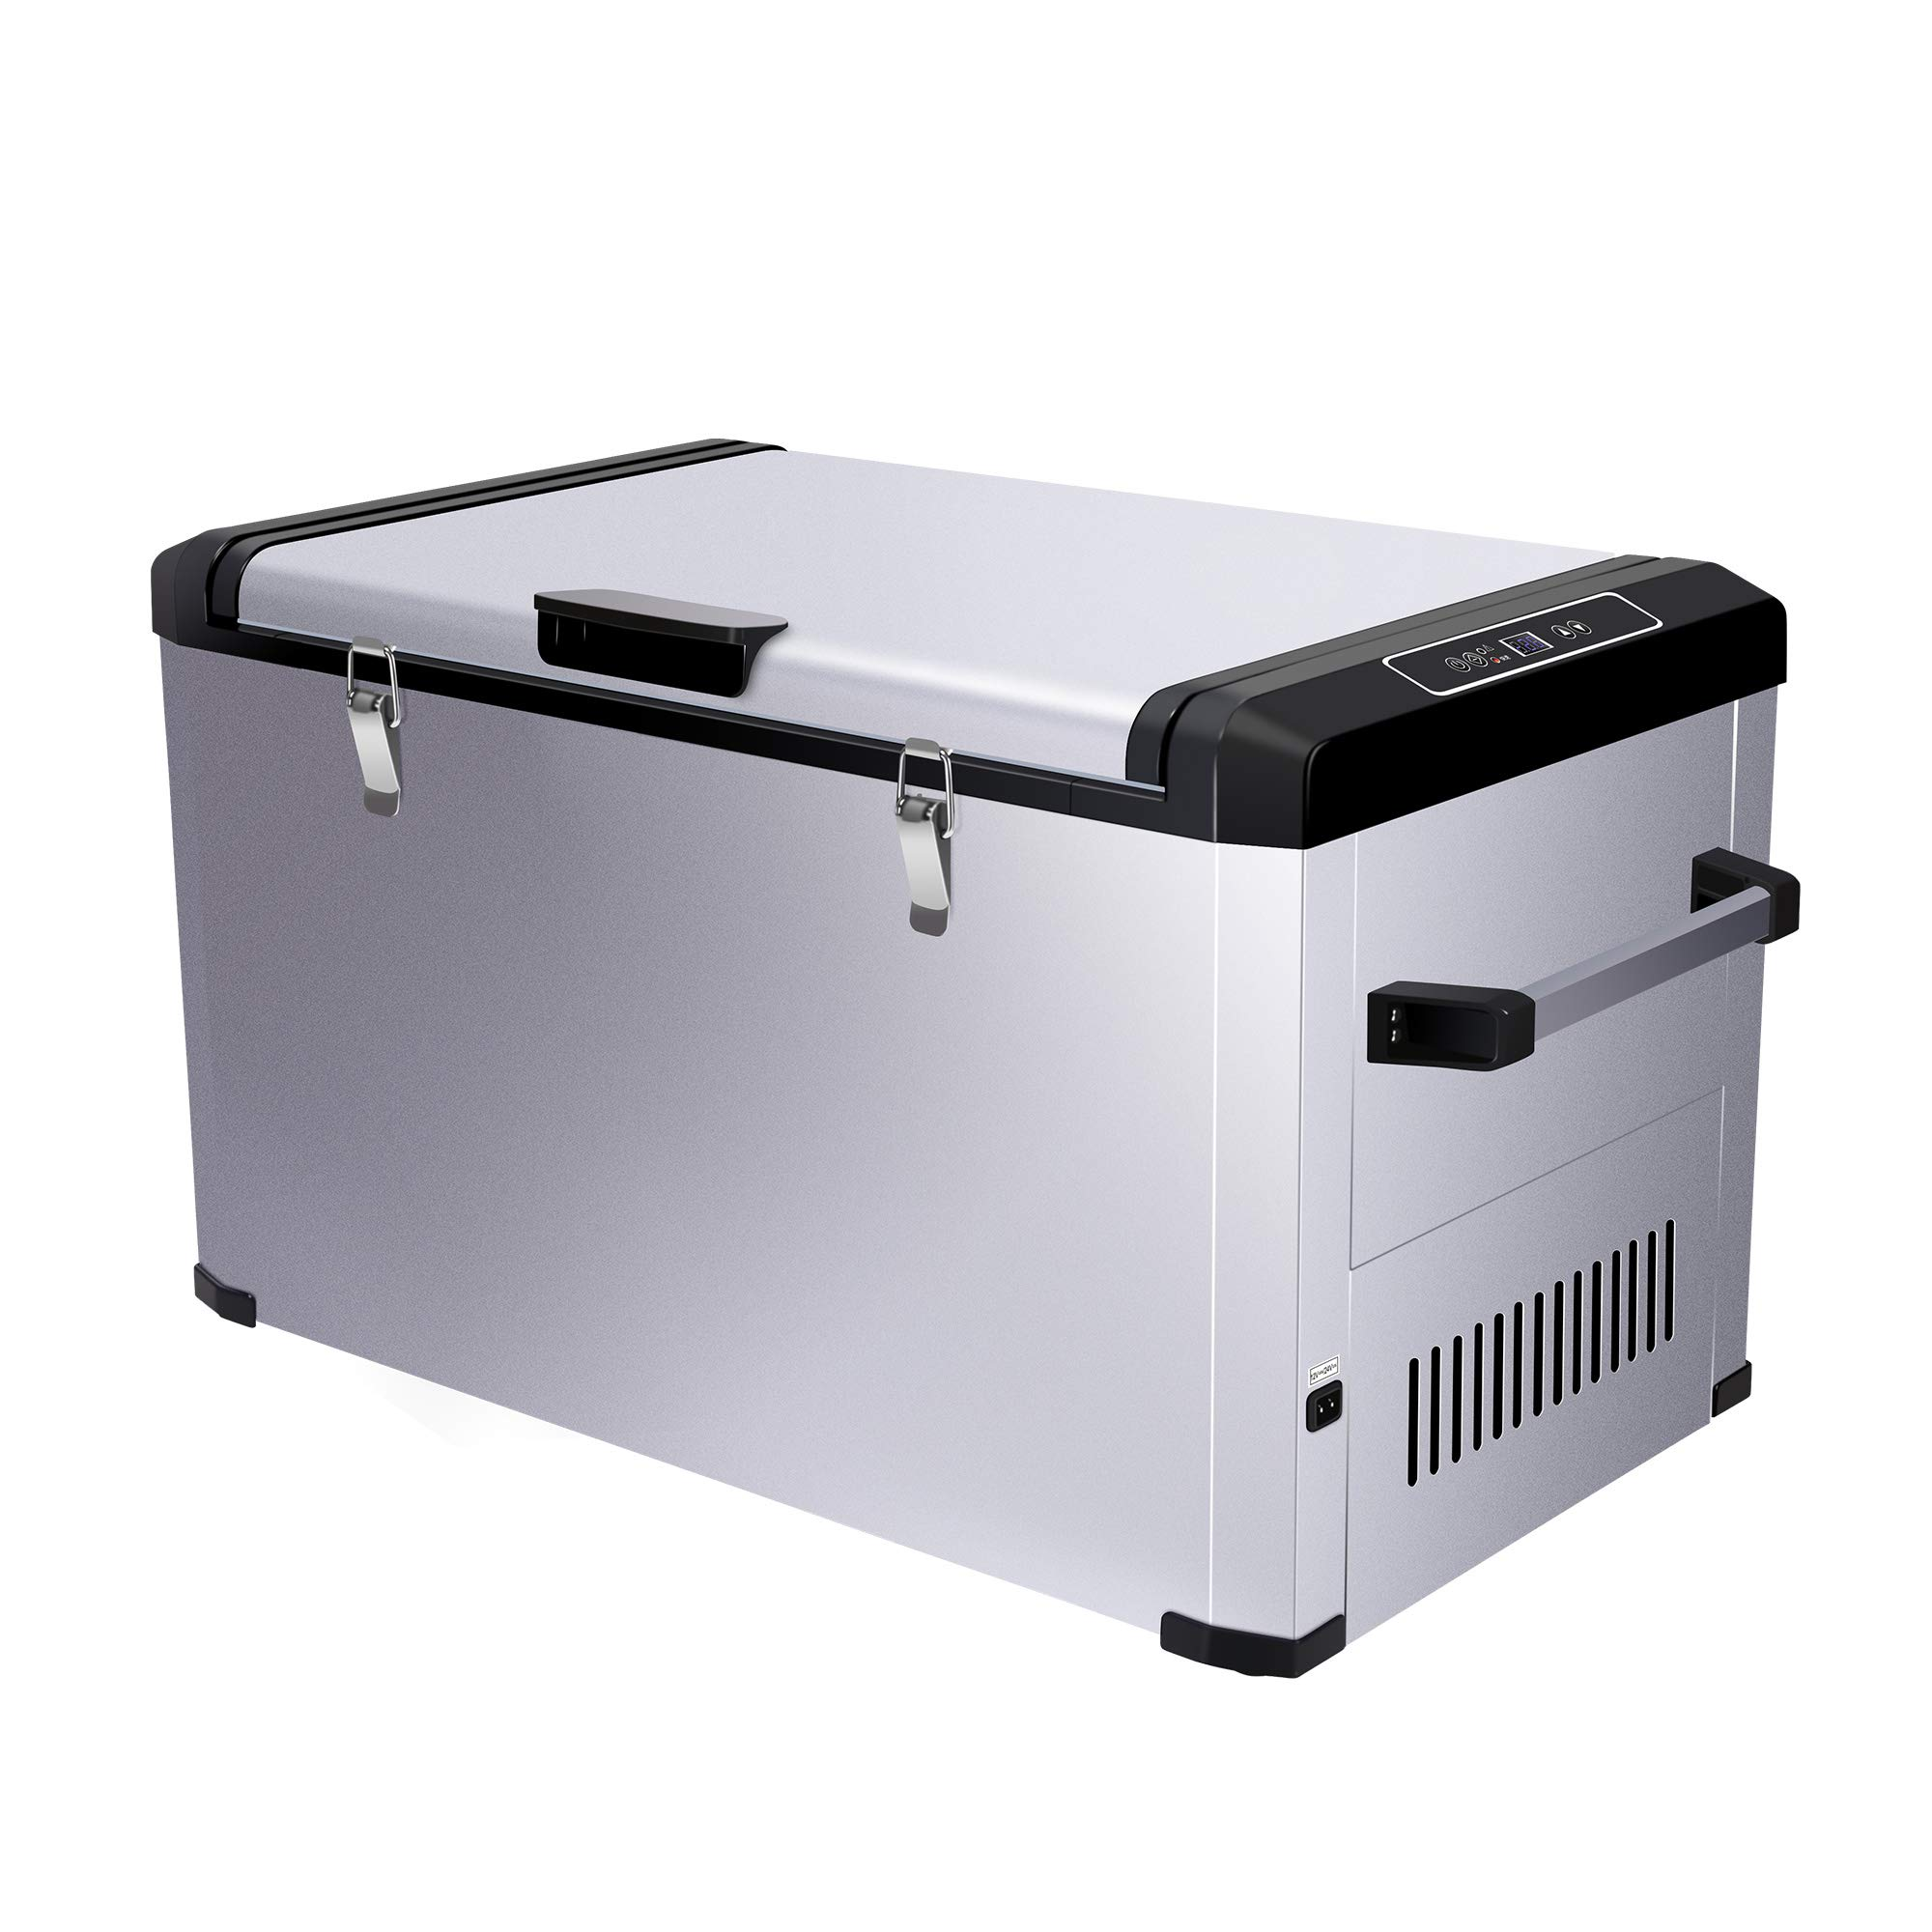 CIGREEN 63.4 Quart (60 Liter) Portable Refrigerator, Compressor Electric Powered Portable Cooler, Fridge/Freezer for Camping, Travelling, Outdoor and Home Use -12/24V DC and 110-240 AC, DC-60F …